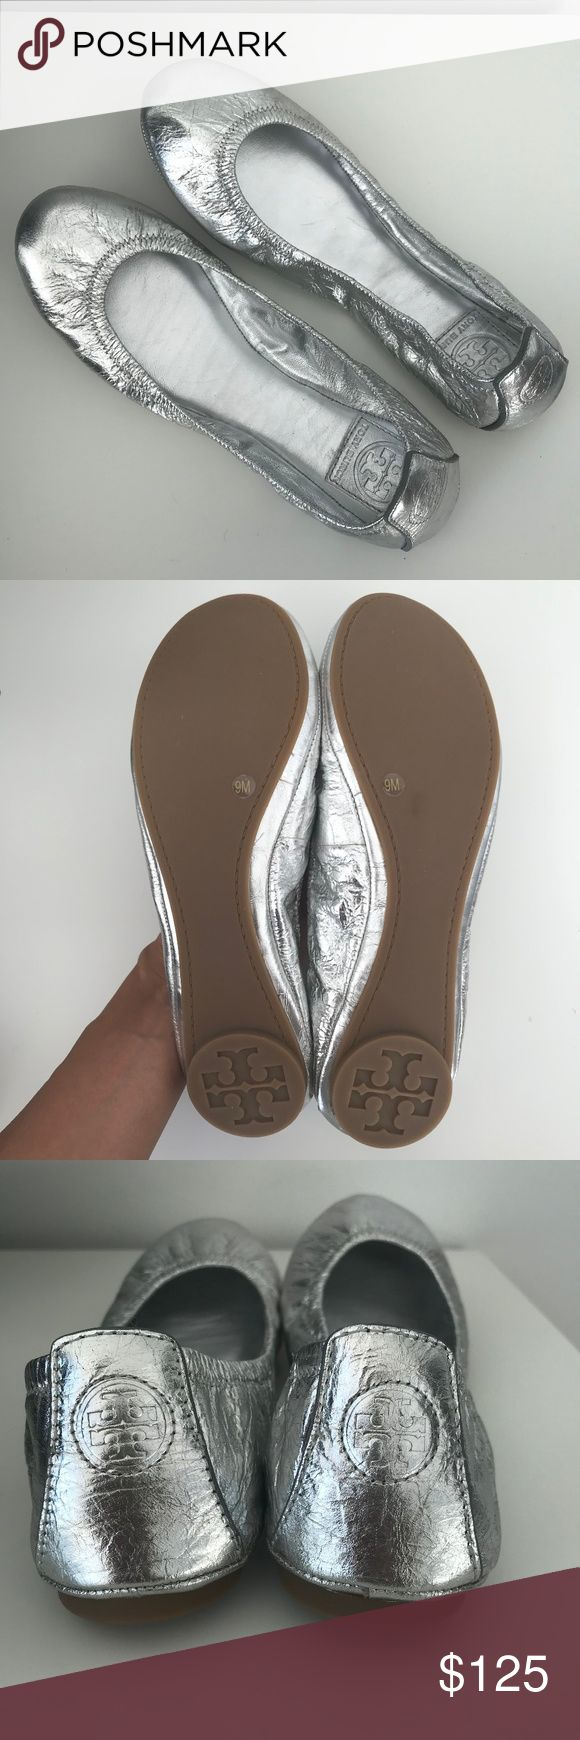 NEVER WORN Tory Burch Metallic Silver Ballet Flats Authentic Tory Burch ballet flats, super comfy. Purchased at Bloomingdales' in NYC, but never worn.  Pair with a flirty skirt or blue jeans; very versatile! Perfect for Spring!  Size 9 US - fits true to size. Tory Burch Shoes Flats & Loafers